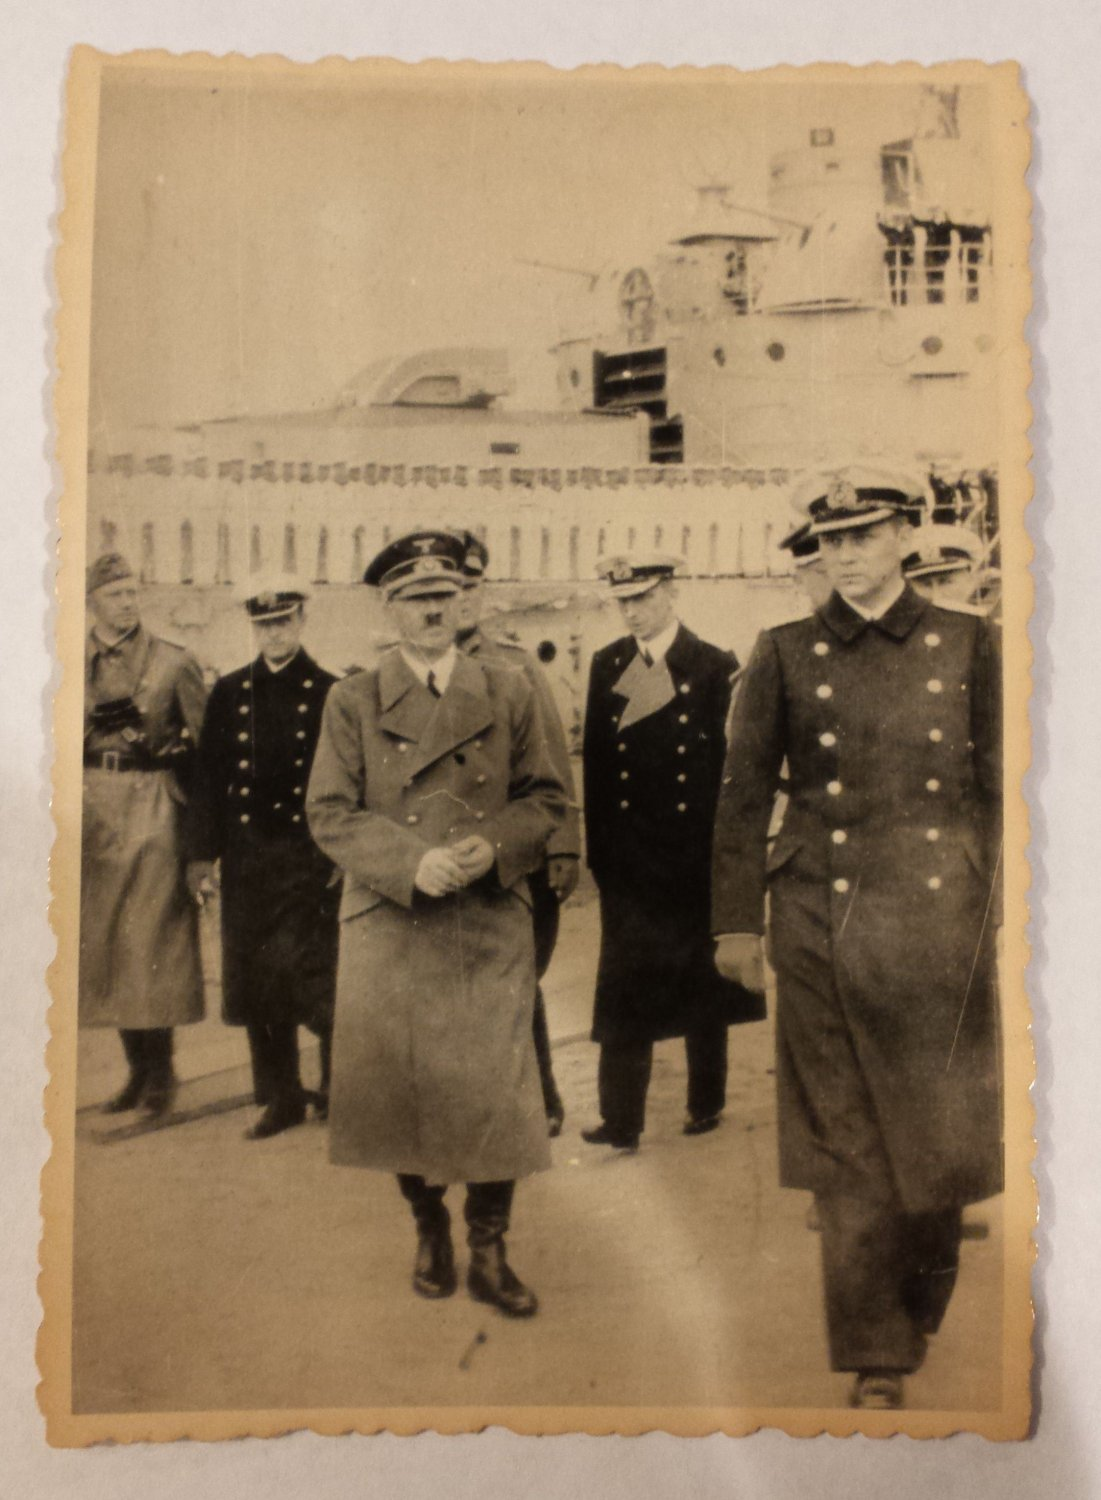 WWII GERMAN LEADER ADOLF HITLER PHOTO - ORIGINAL